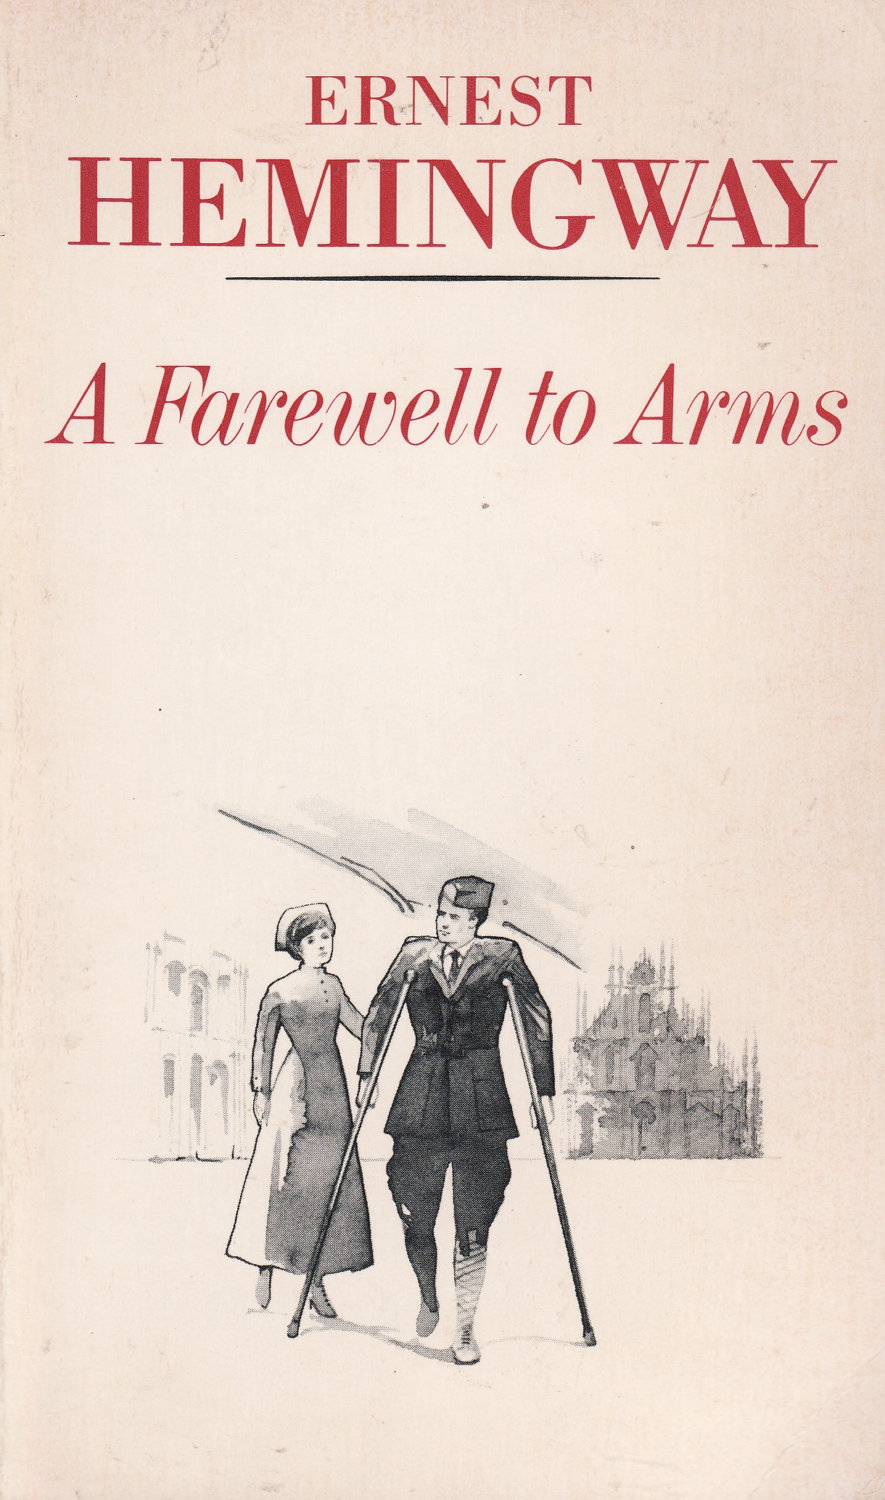 "a farewell to arms essay Throughout the novel, a farewell to arms, ernest hemingway developed a specific discipline and behavior for a true hemingway ""code hero"" although there are many characters in the novel, each one of them possessed a similar or contrasting characteristic of a ""code hero."